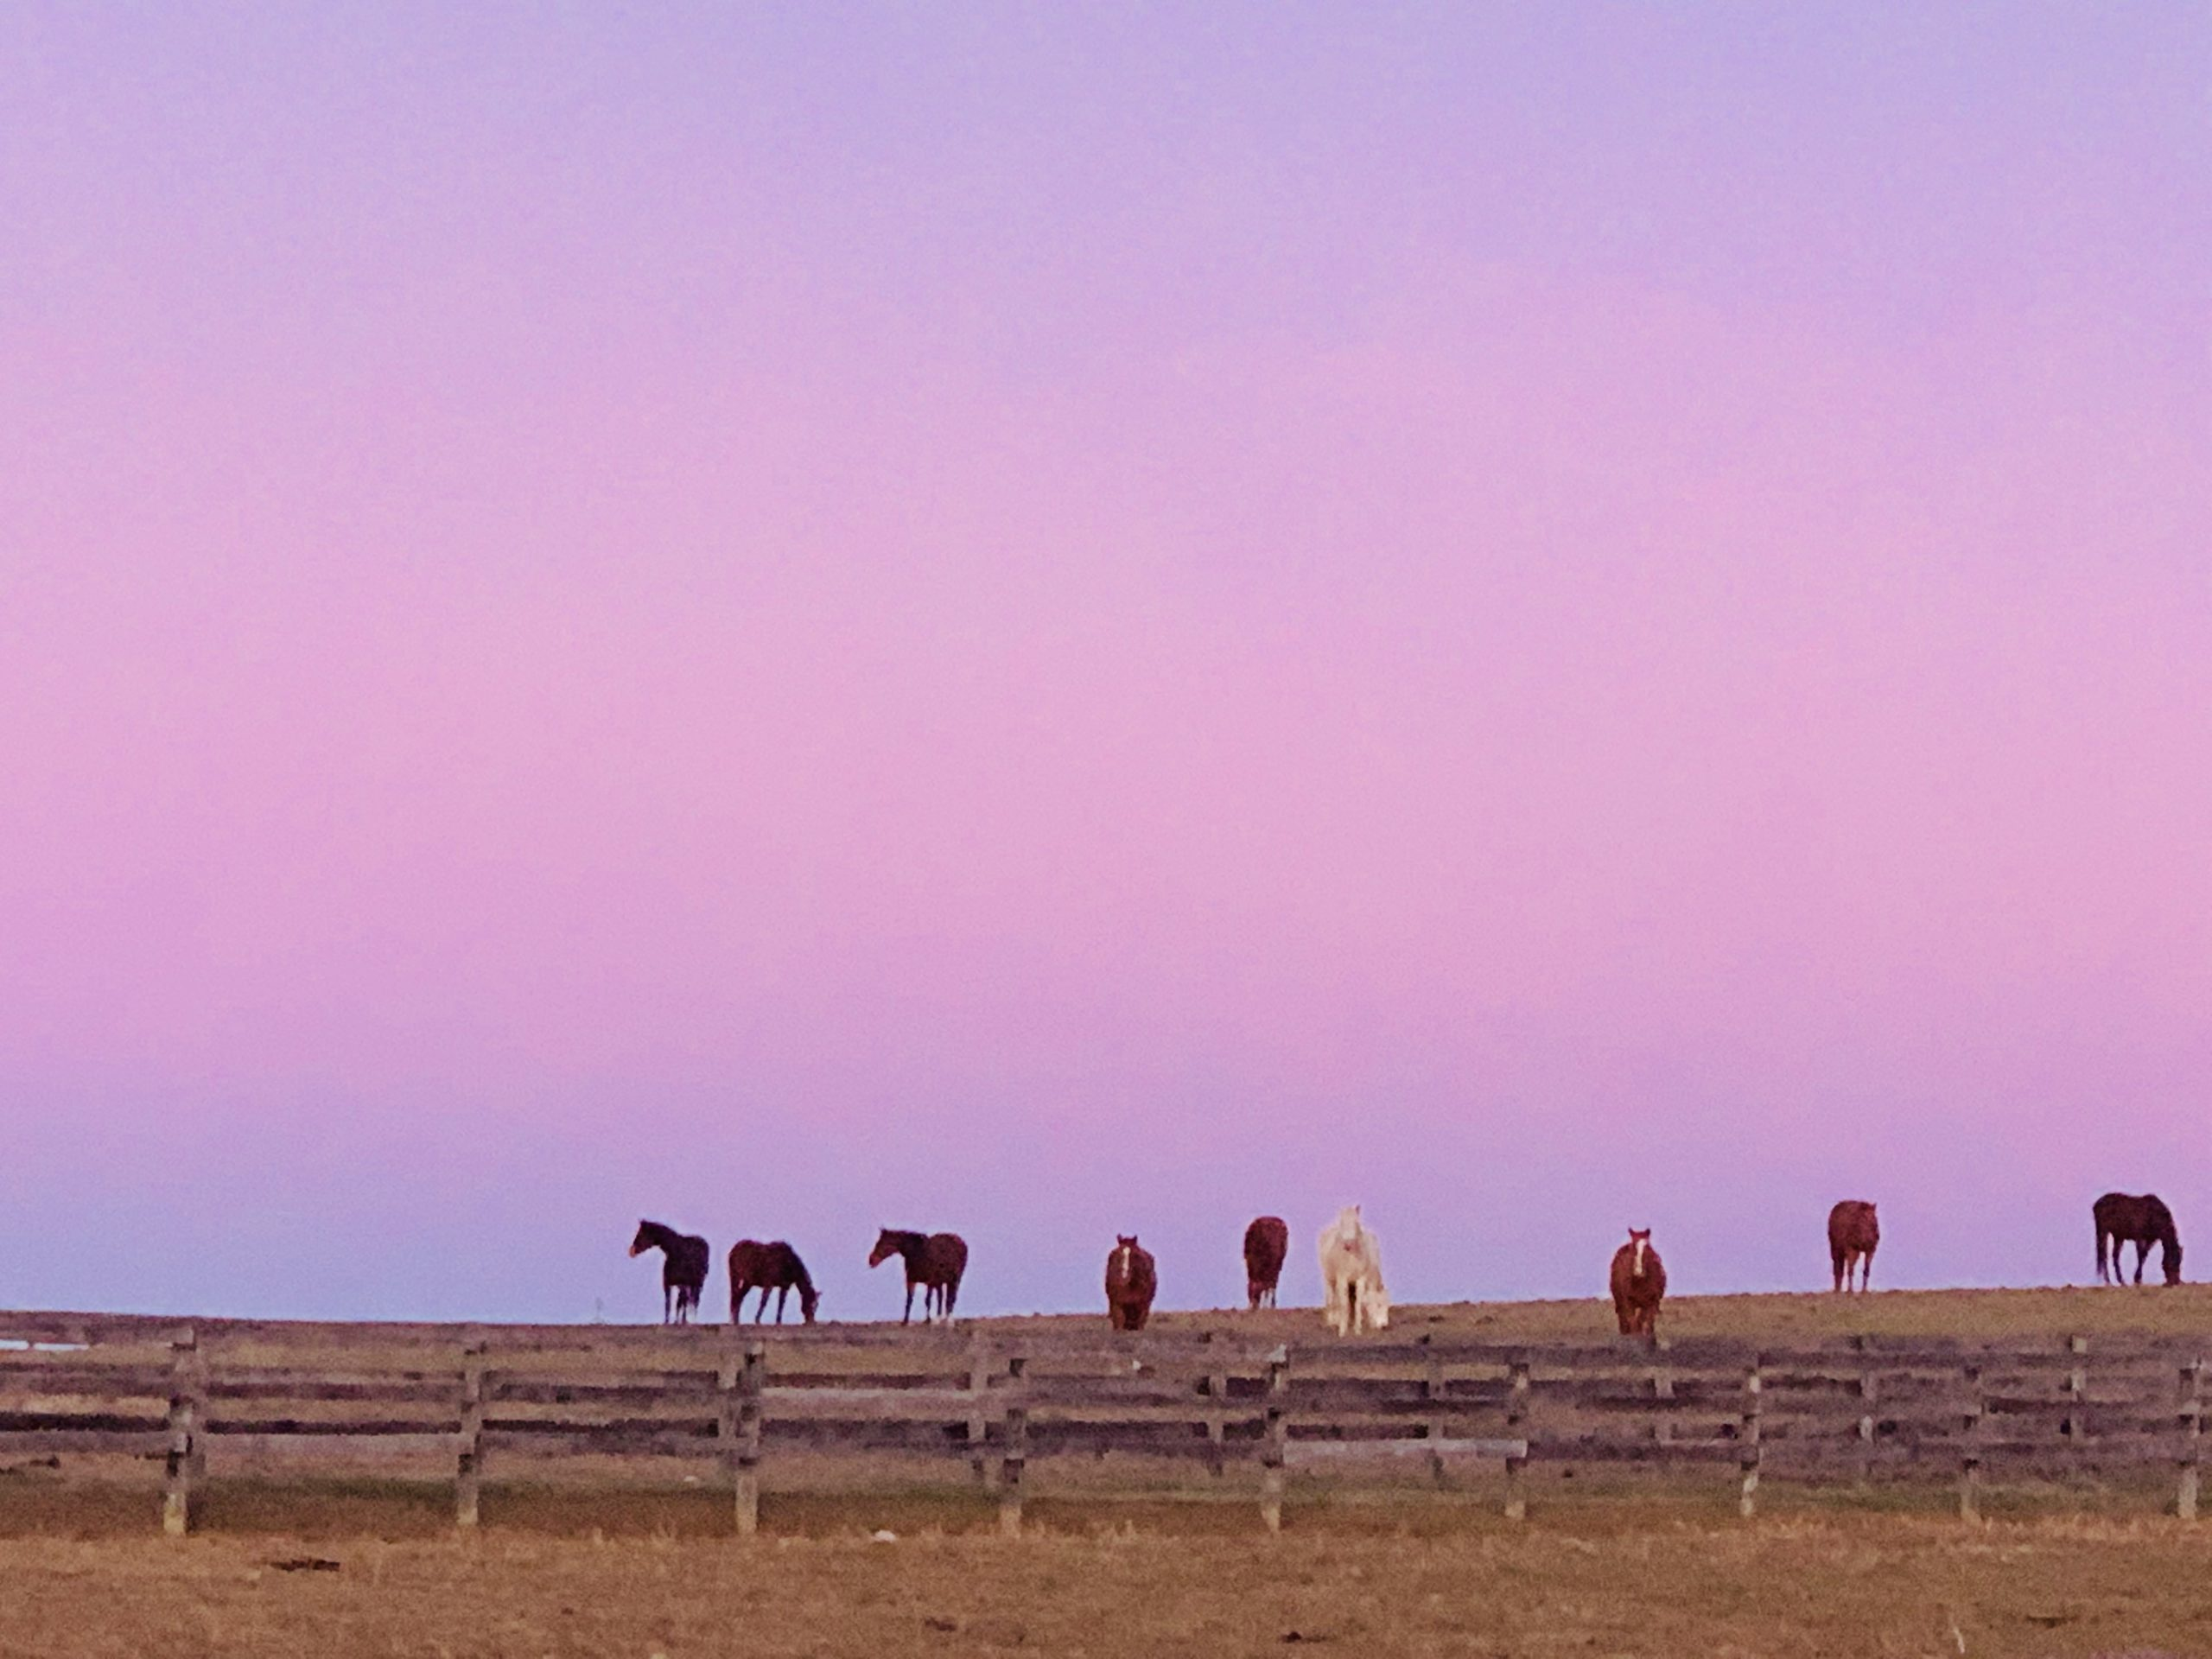 Some of our sanctuary mares grazing at sunrise. They have found a safe place to land with their forever home at Foxie G.